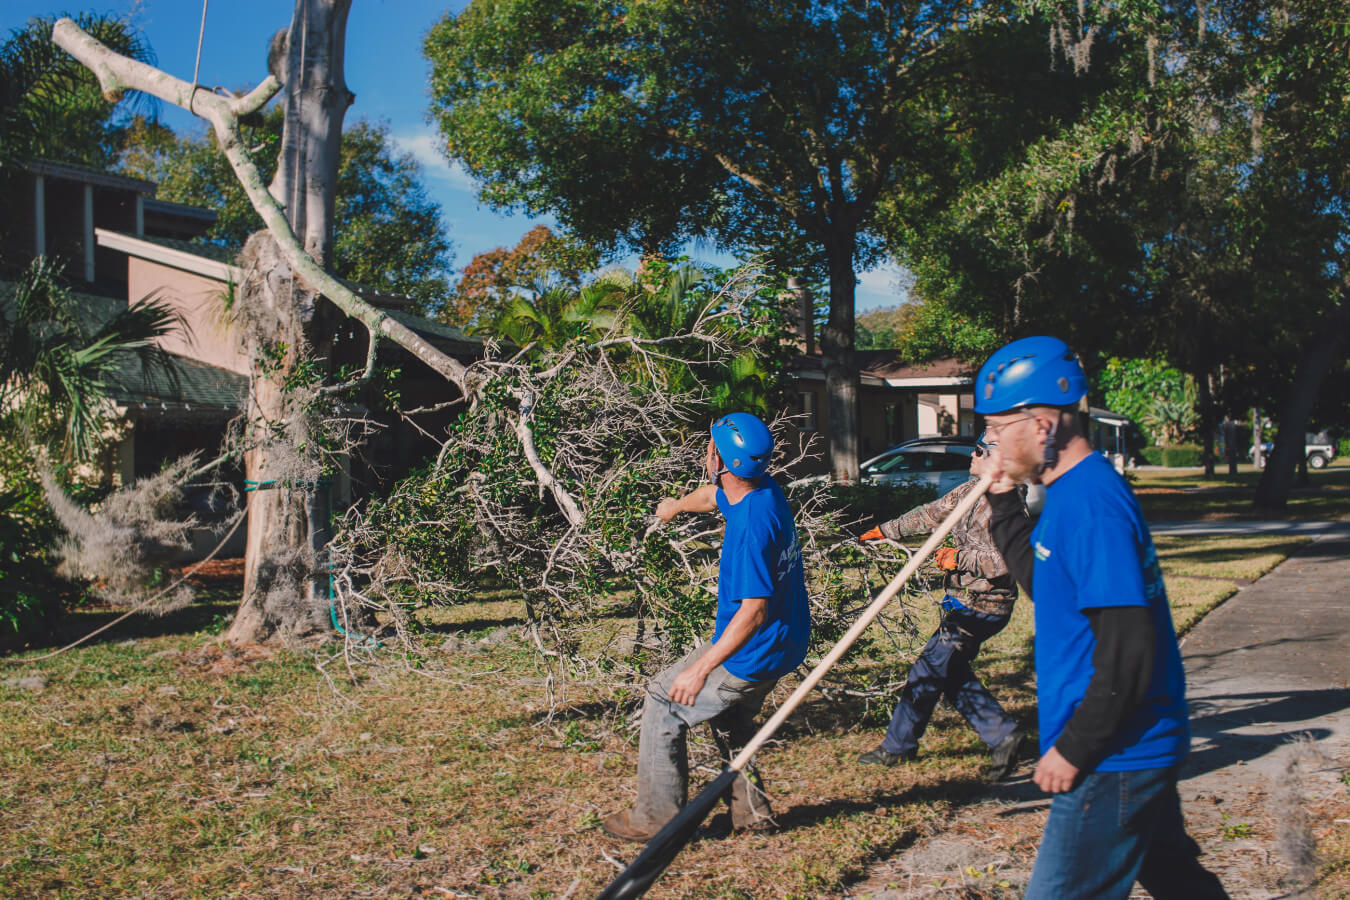 Residential Tree Services-Oceanside CA Tree Trimming and Stump Grinding Services-We Offer Tree Trimming Services, Tree Removal, Tree Pruning, Tree Cutting, Residential and Commercial Tree Trimming Services, Storm Damage, Emergency Tree Removal, Land Clearing, Tree Companies, Tree Care Service, Stump Grinding, and we're the Best Tree Trimming Company Near You Guaranteed!